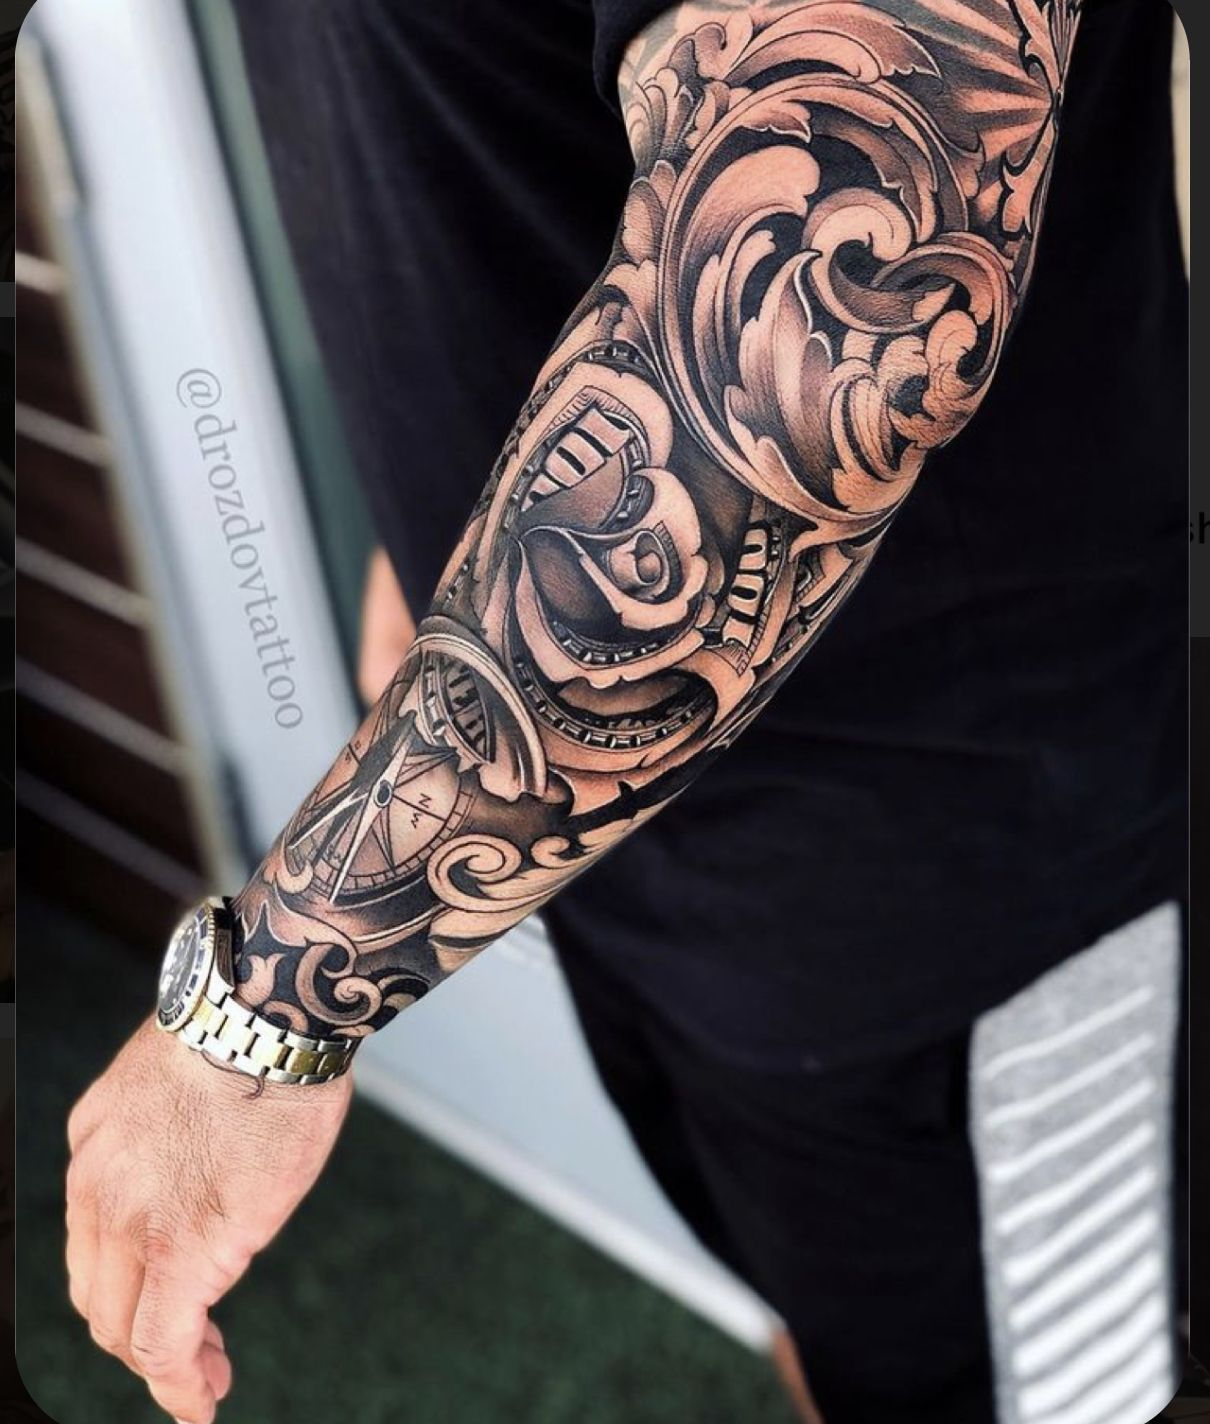 Pin By Pjv On Awesome Tattoos In 2020 Rose Tattoo Sleeve Tattoo Sleeve Designs Sleeve Tattoos